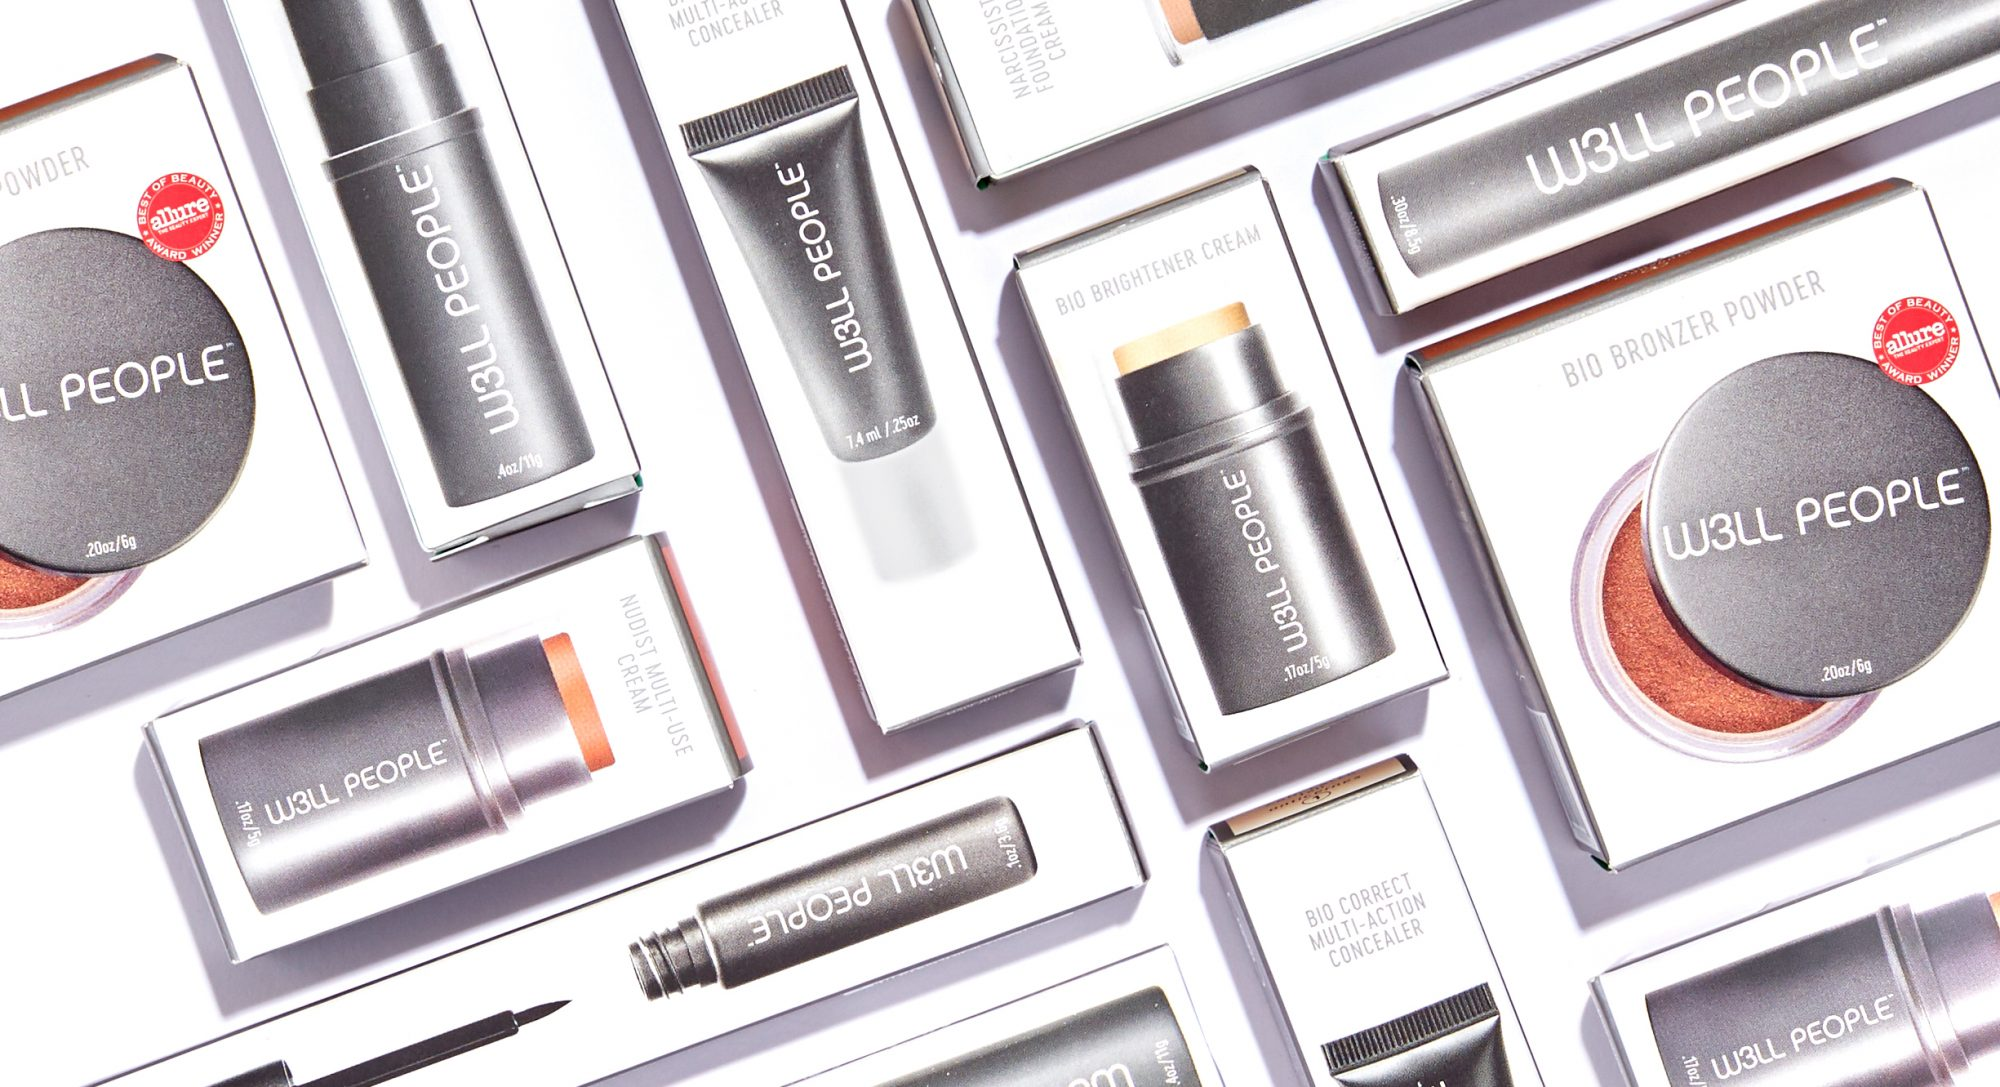 How W3LL PEOPLE Is Pioneering Innovative, Plant-Based Cosmetics